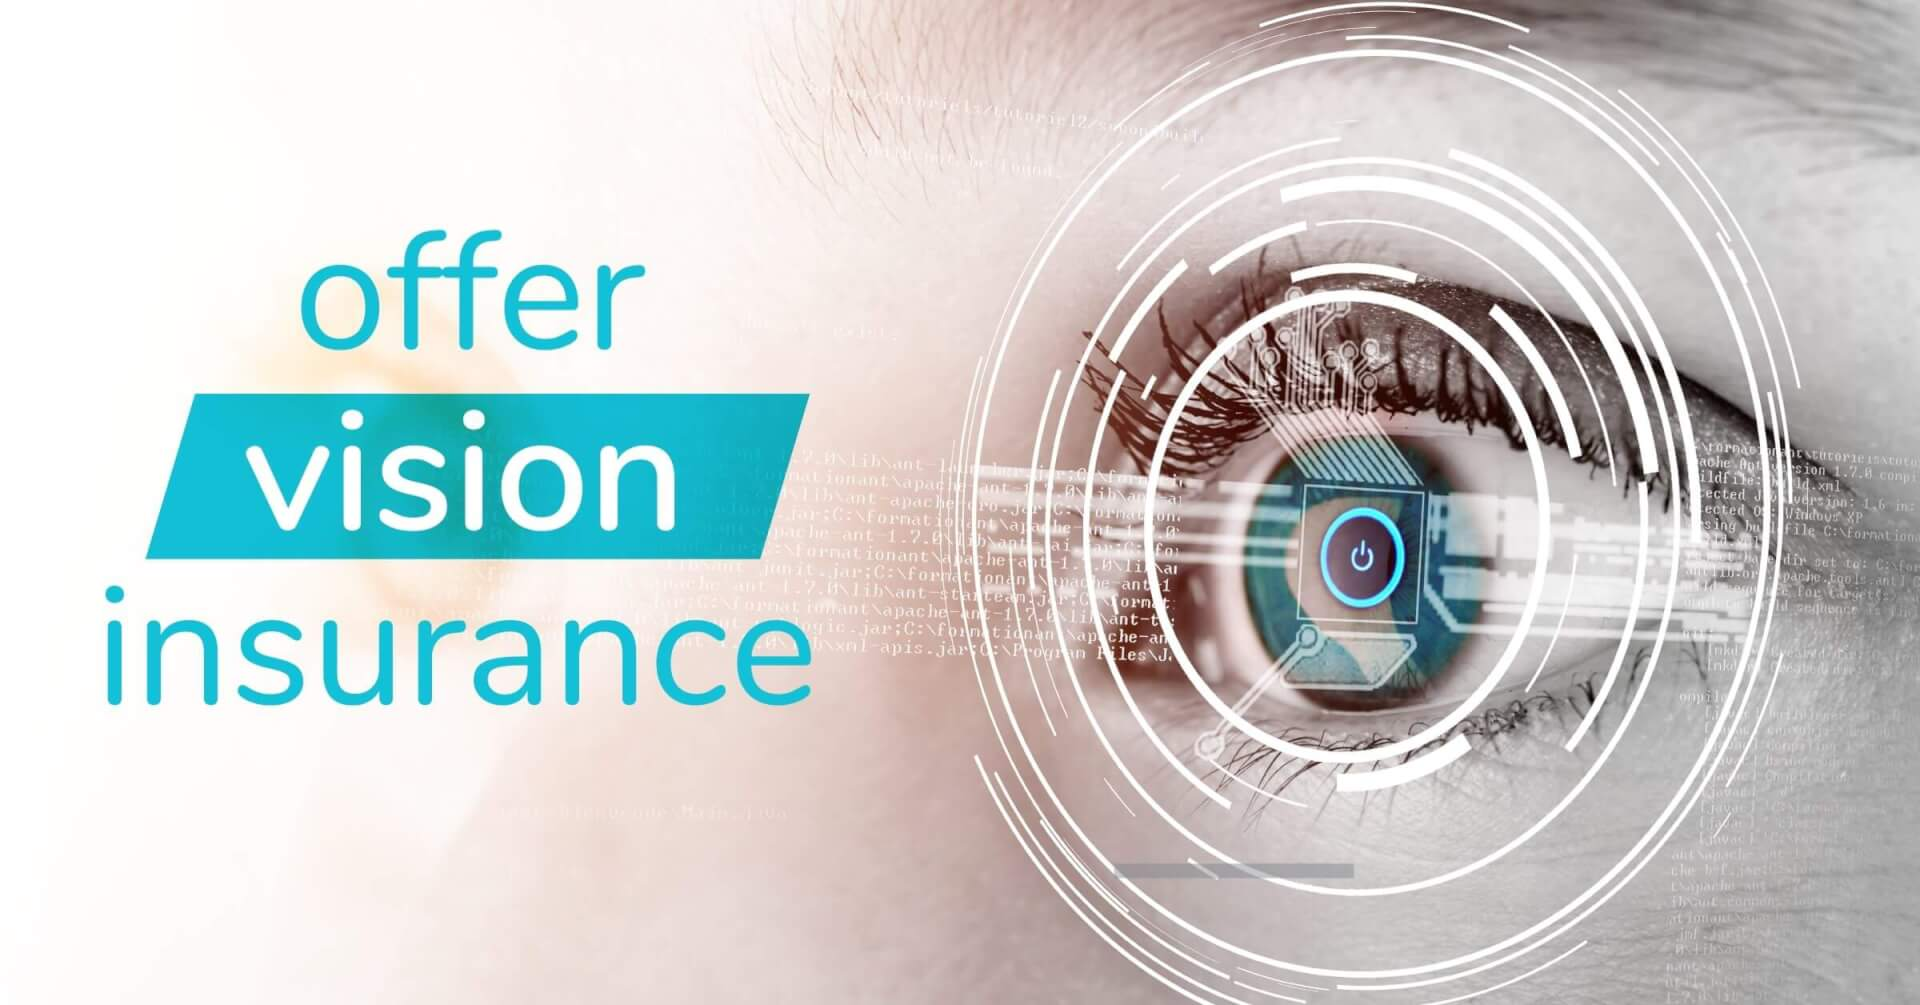 Social Benefits - Offer Vision Insurance